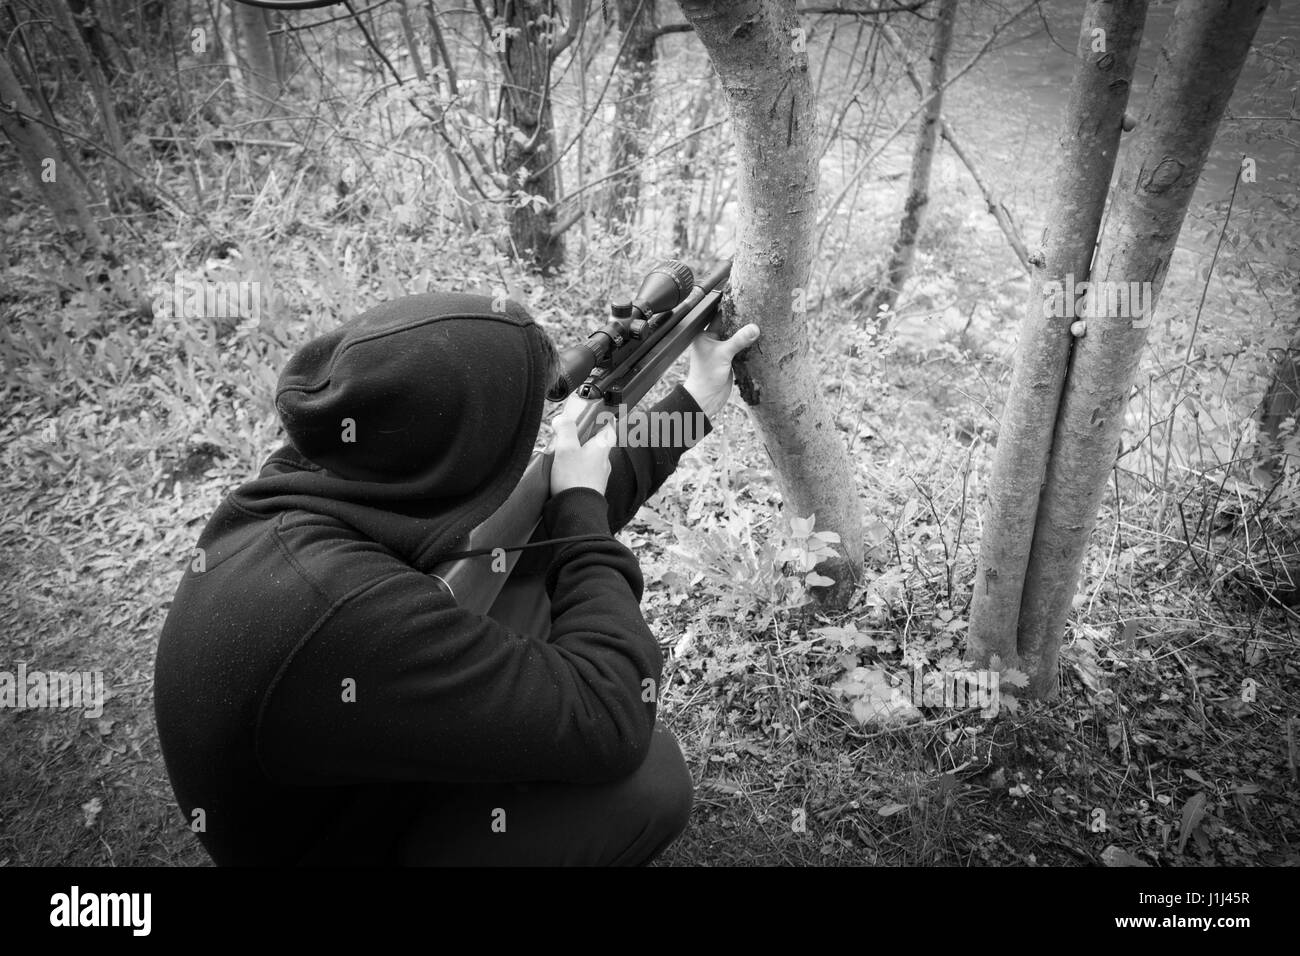 Close-up of man in headgear aiming with sniper rifle - Stock Image